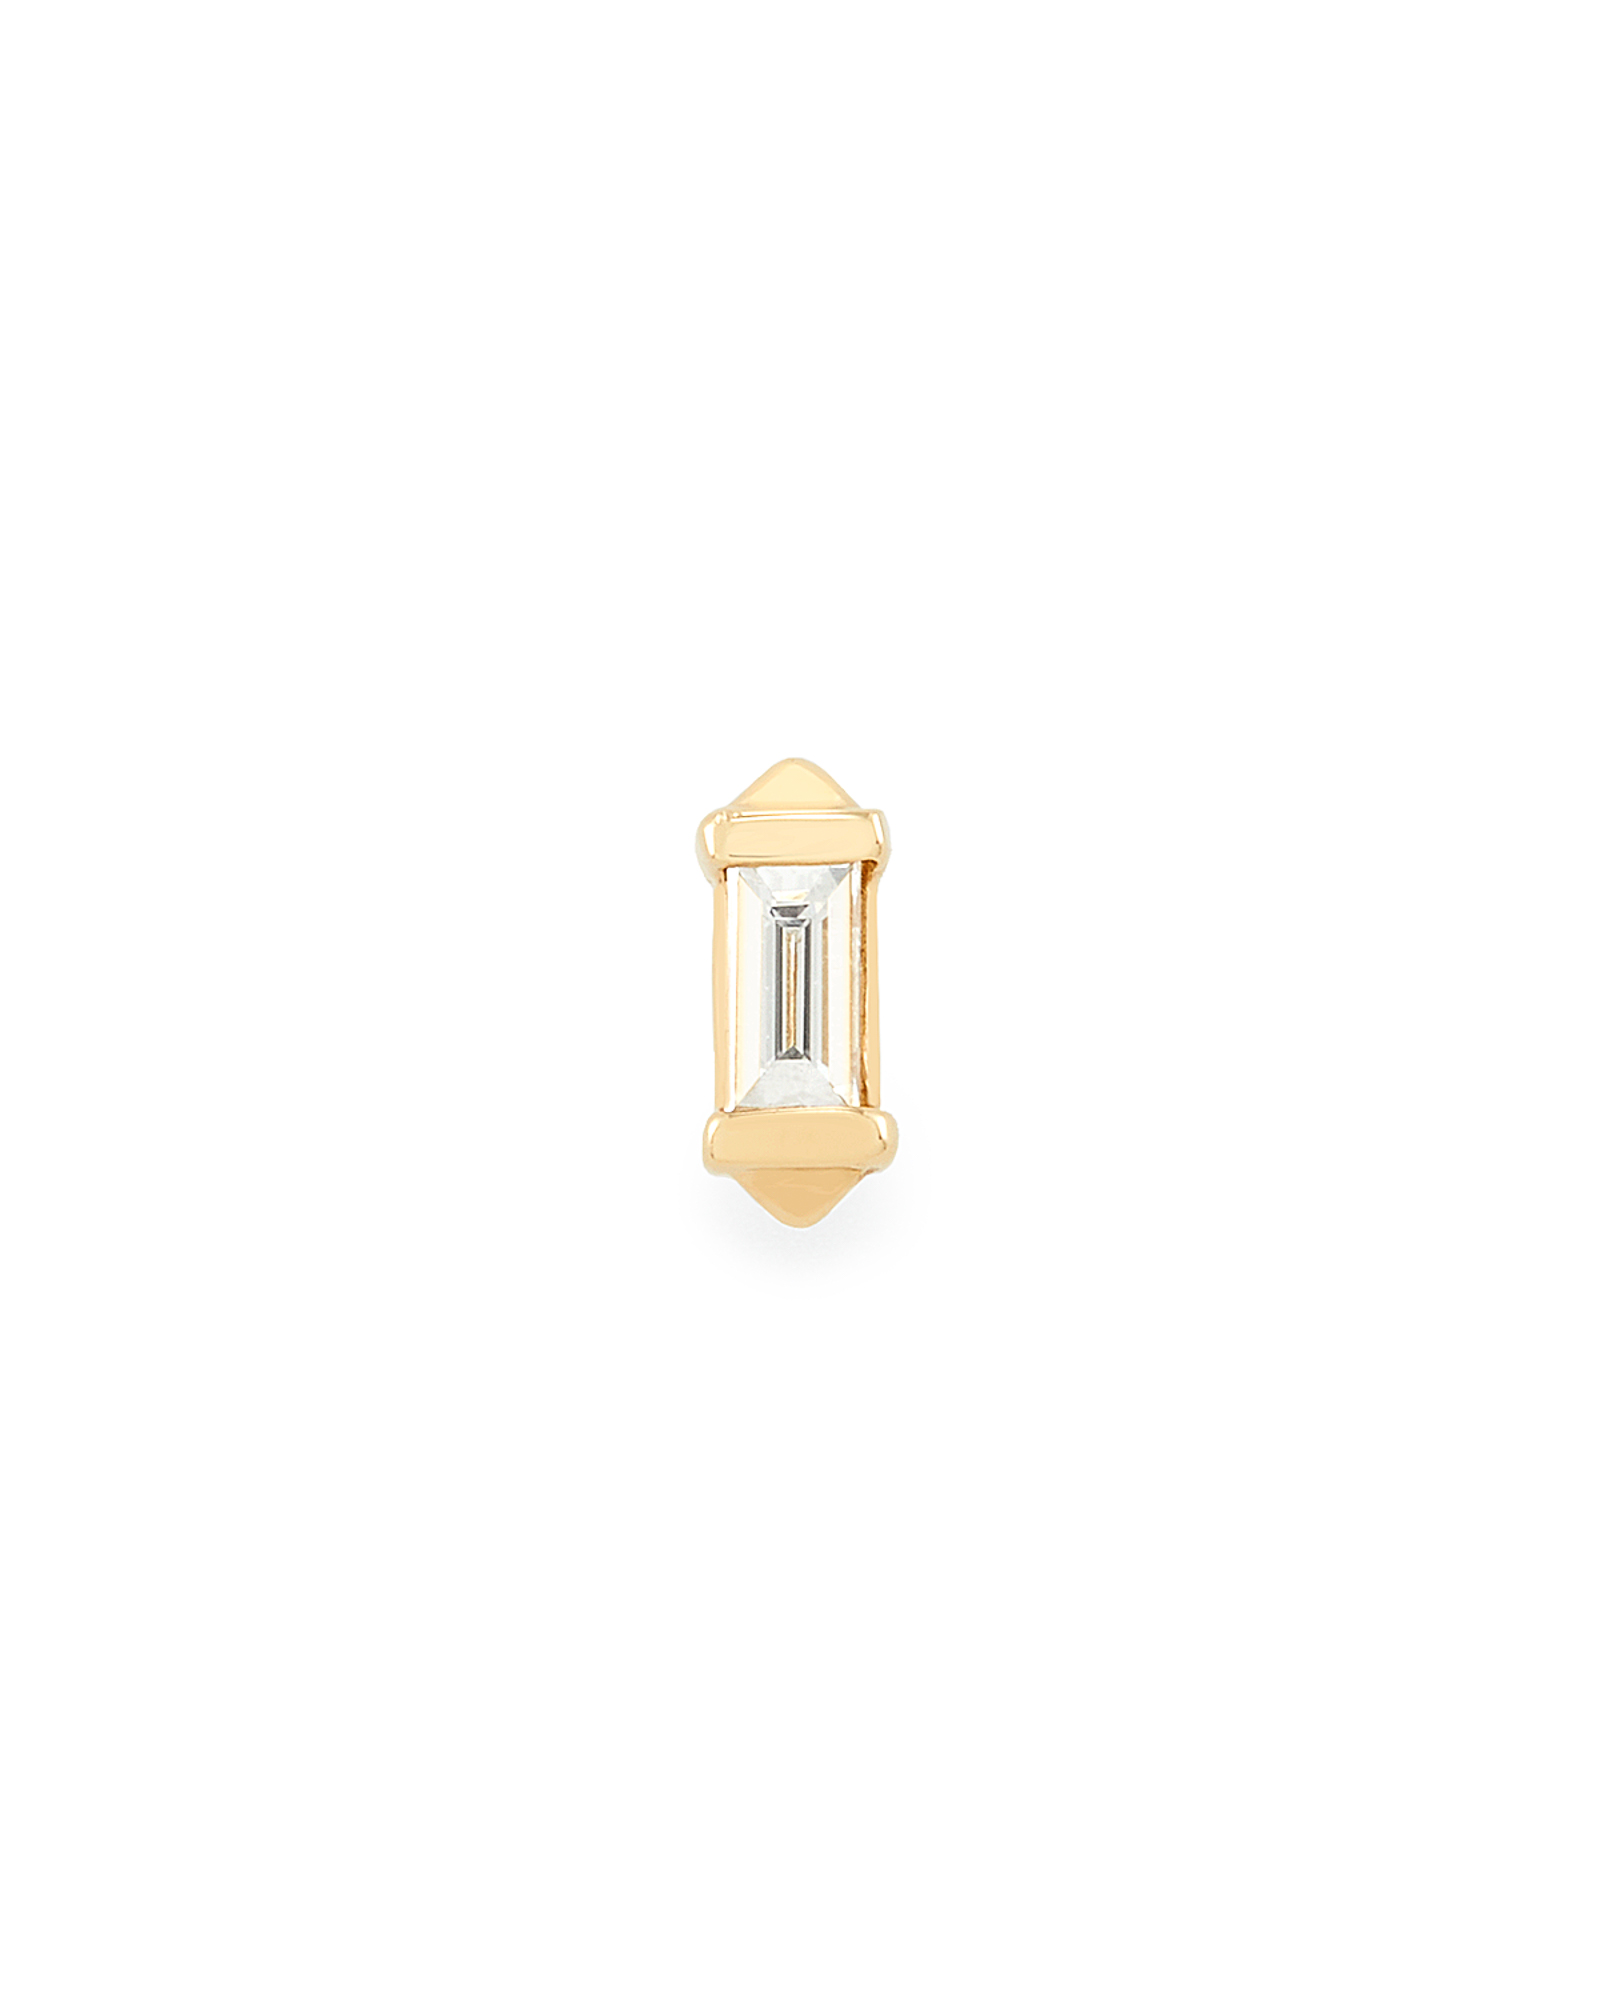 Sianna Mini 14K Yellow Gold Stud Earring in White Diamond